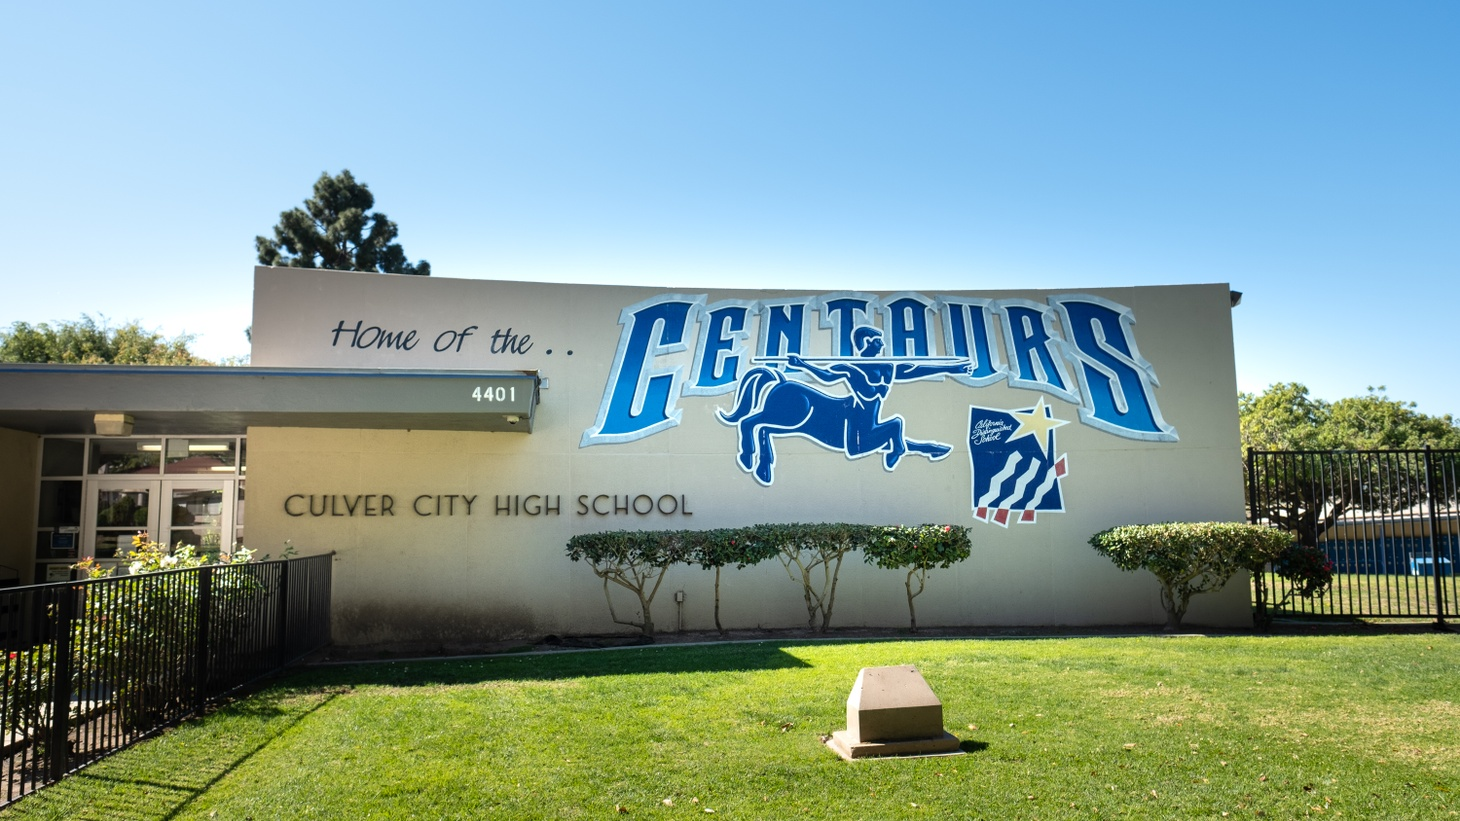 Culver City High School is a public school in Southern California that serves grades 9-12. The state education department reported on April 22, 2021 that California public schools saw a 3% enrollment drop in the 2021-21 academic year.